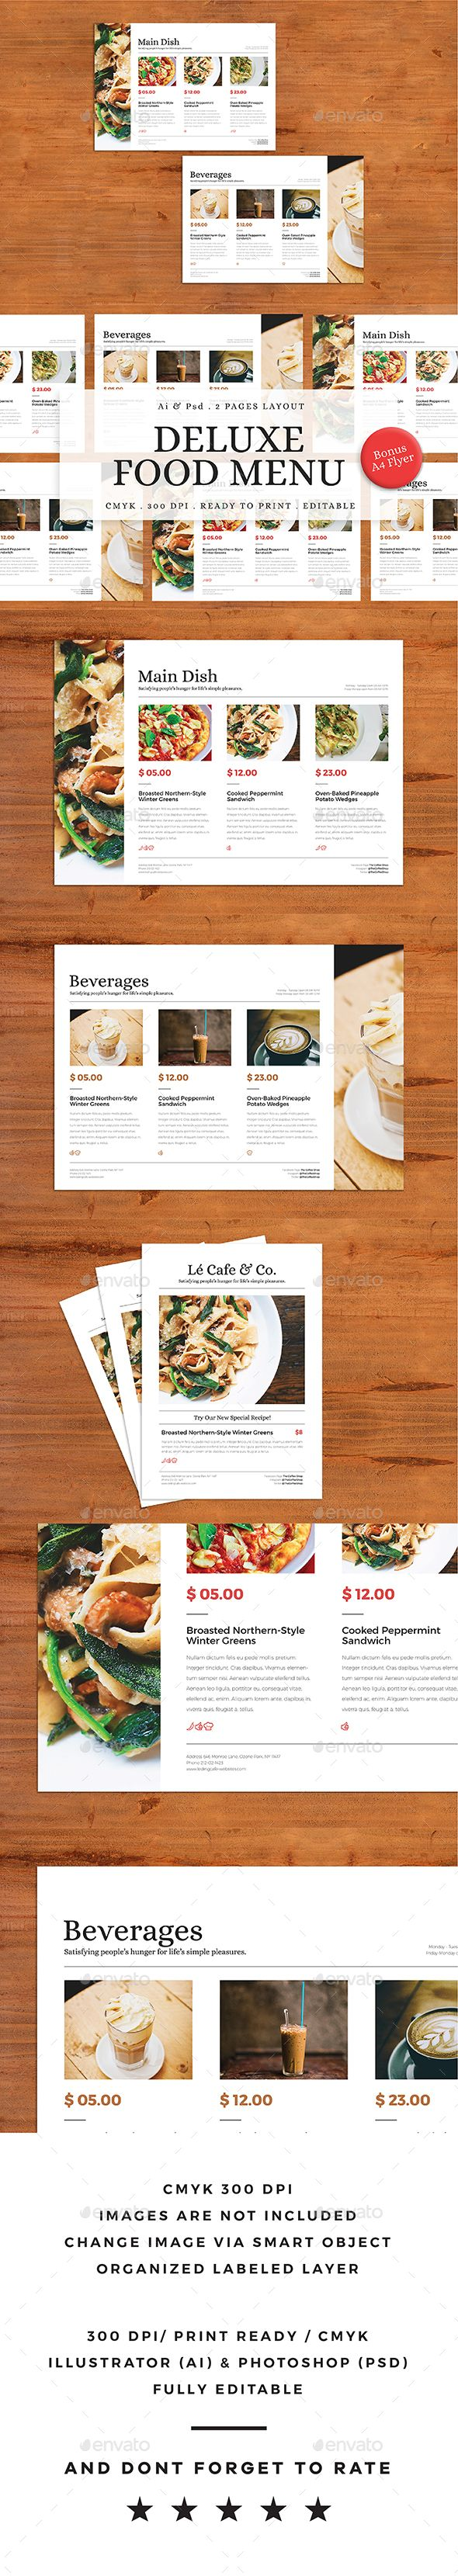 Menu Design Ideas oriental restaurant menu design ideas restaurant menu design that can give you inspiration home design Deluxe Food Menu A4 Flyer Menu Food Menus Print Templates Download